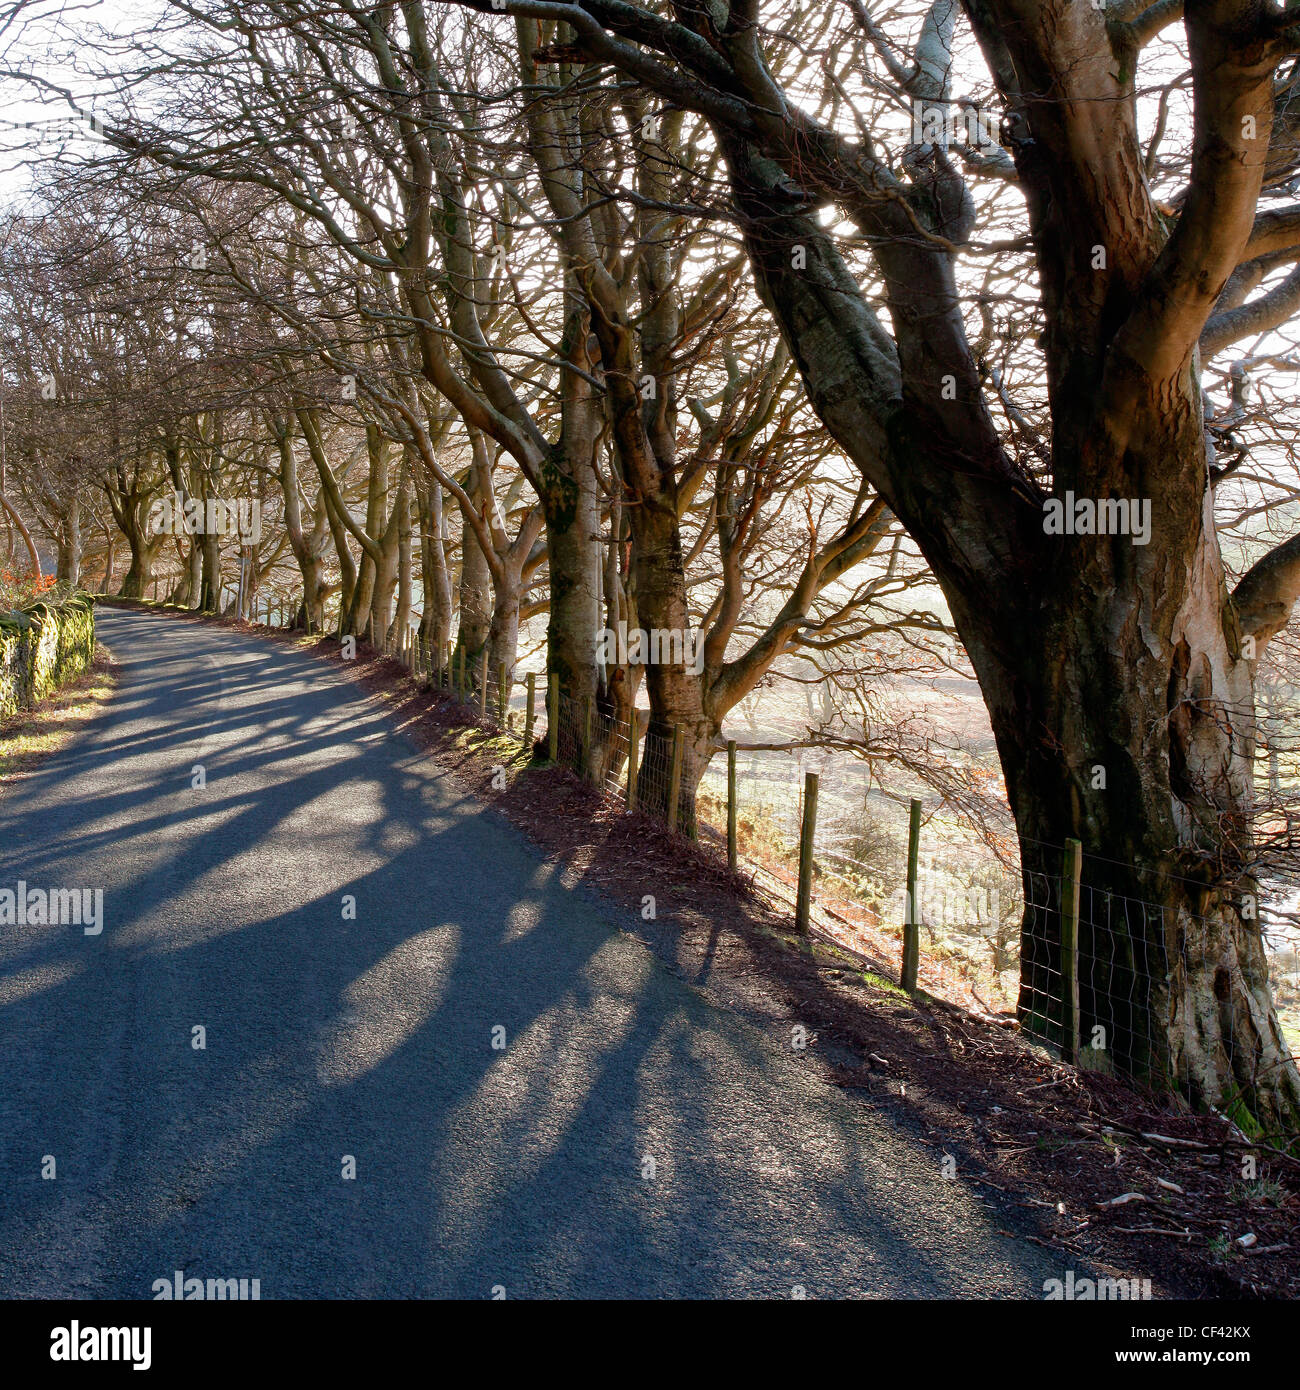 Sunlight filters through bare trees onto a country road in the Lake District. - Stock Image